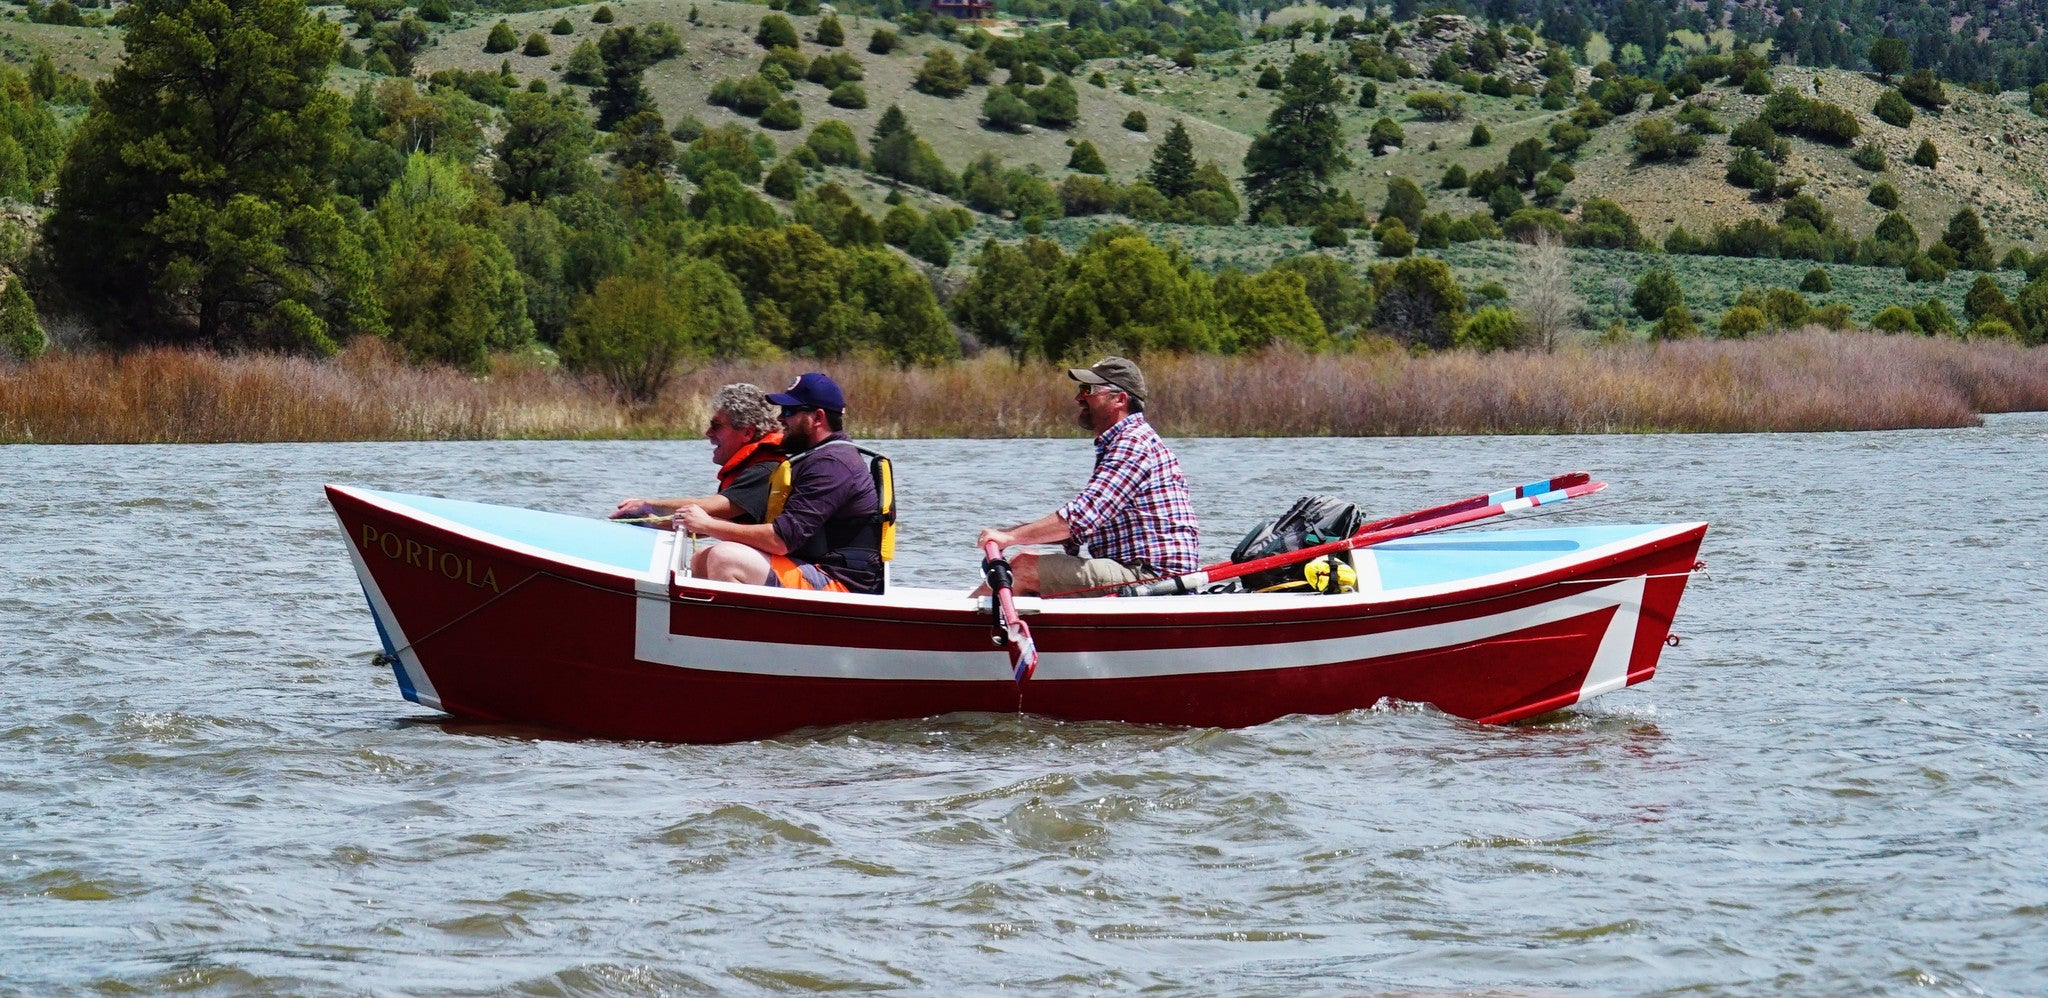 Fathers & Sons - TNB on the Colorado River